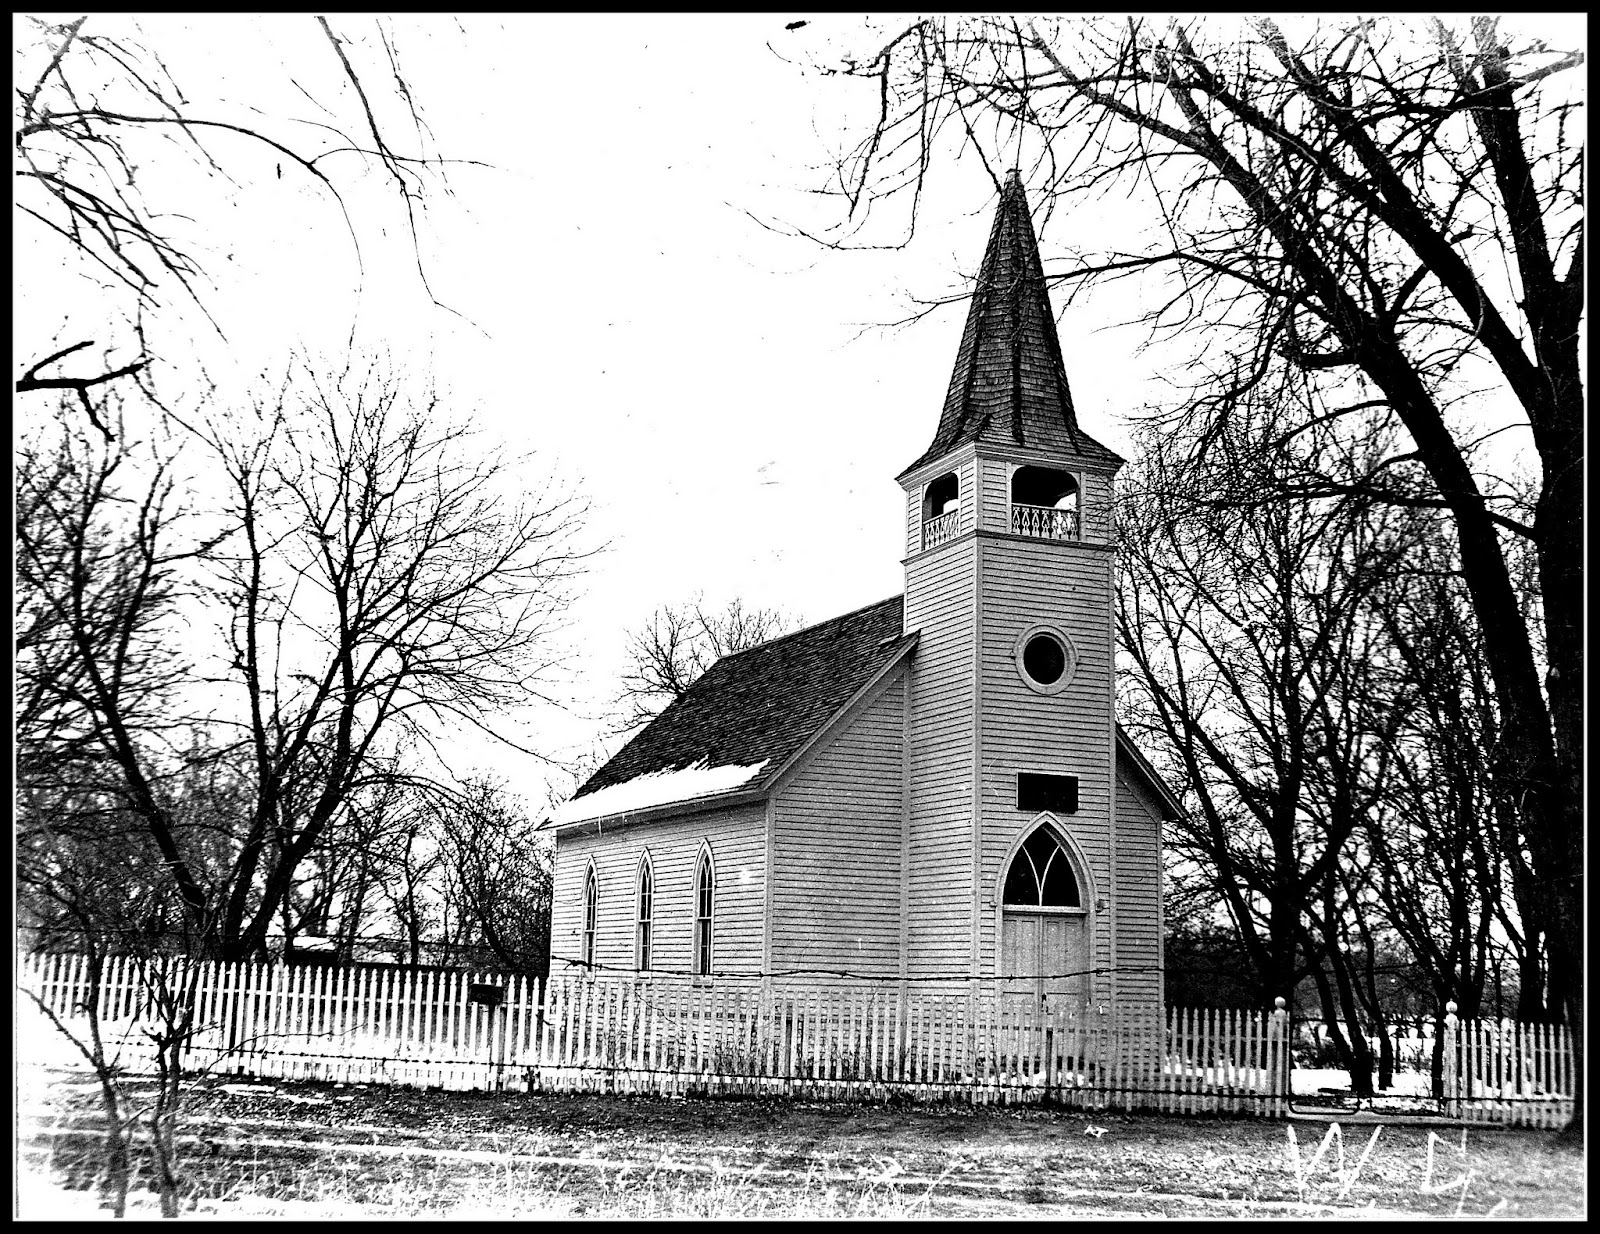 Evangelical Lutheran Church - Lost Creek Township